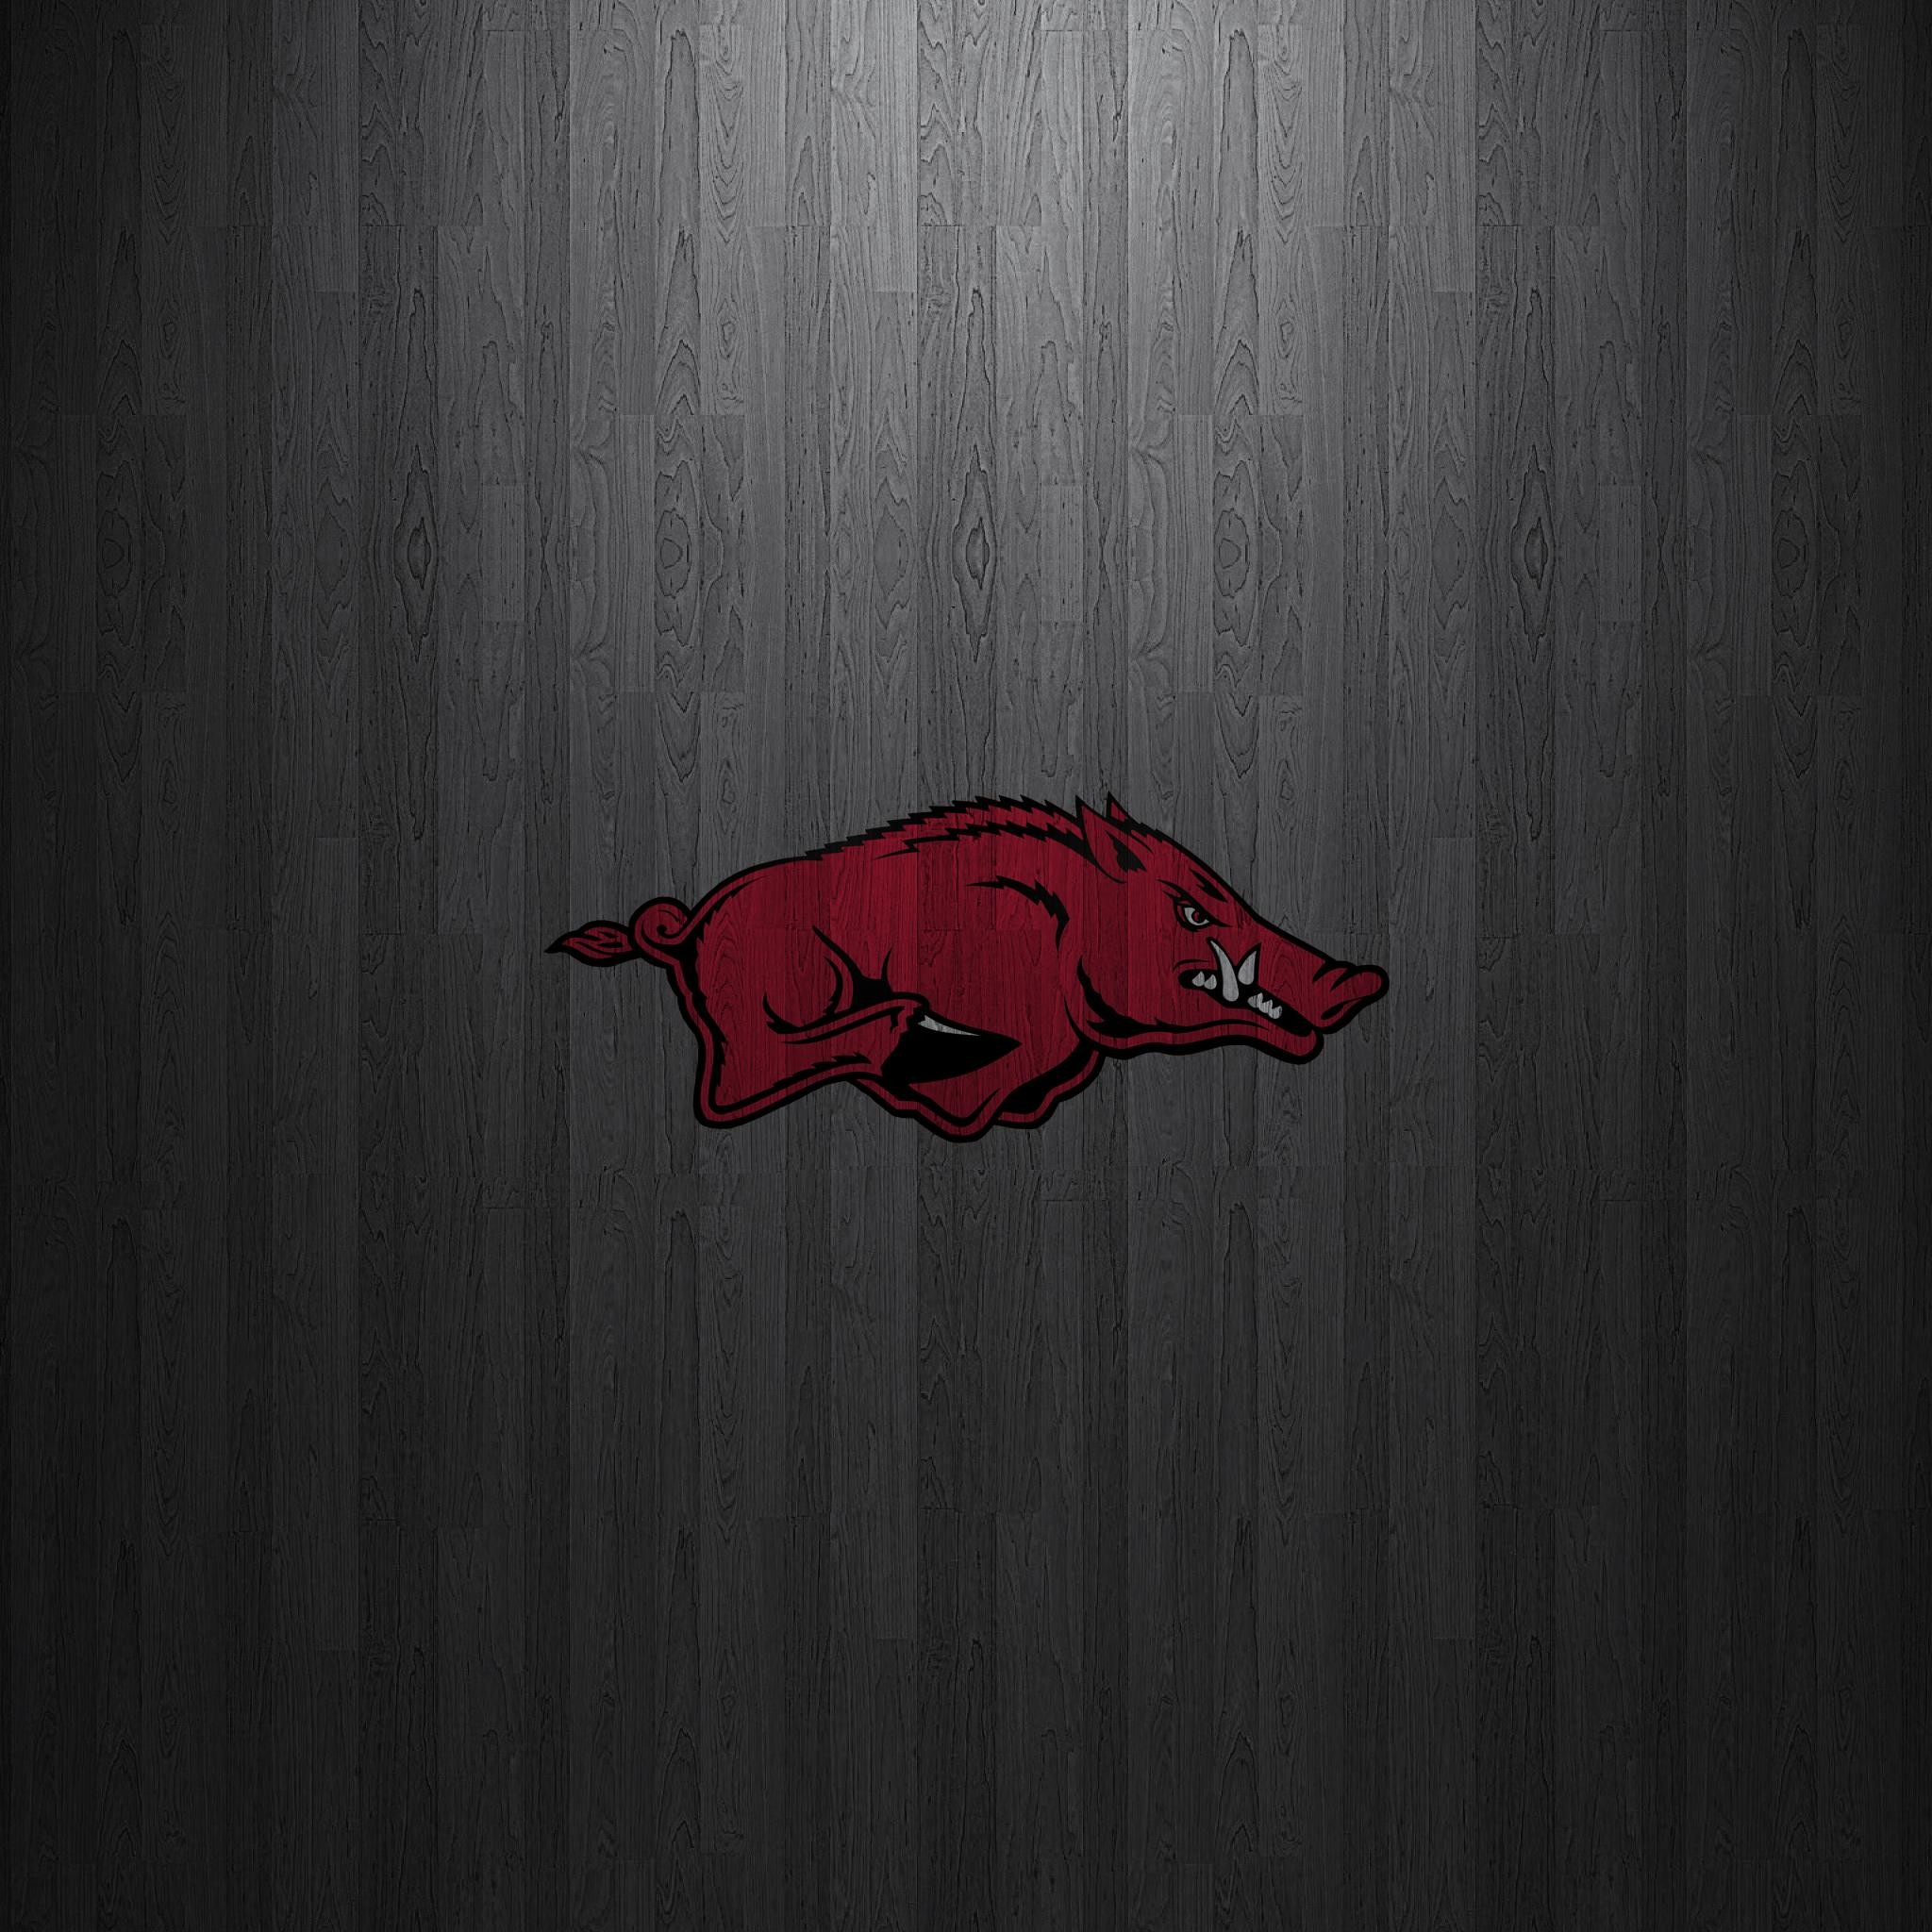 2048x2048 Arkansas Razorbacks Iphone Wallpapers Iphone Logo Wallpaper | iPad ...:  http:/